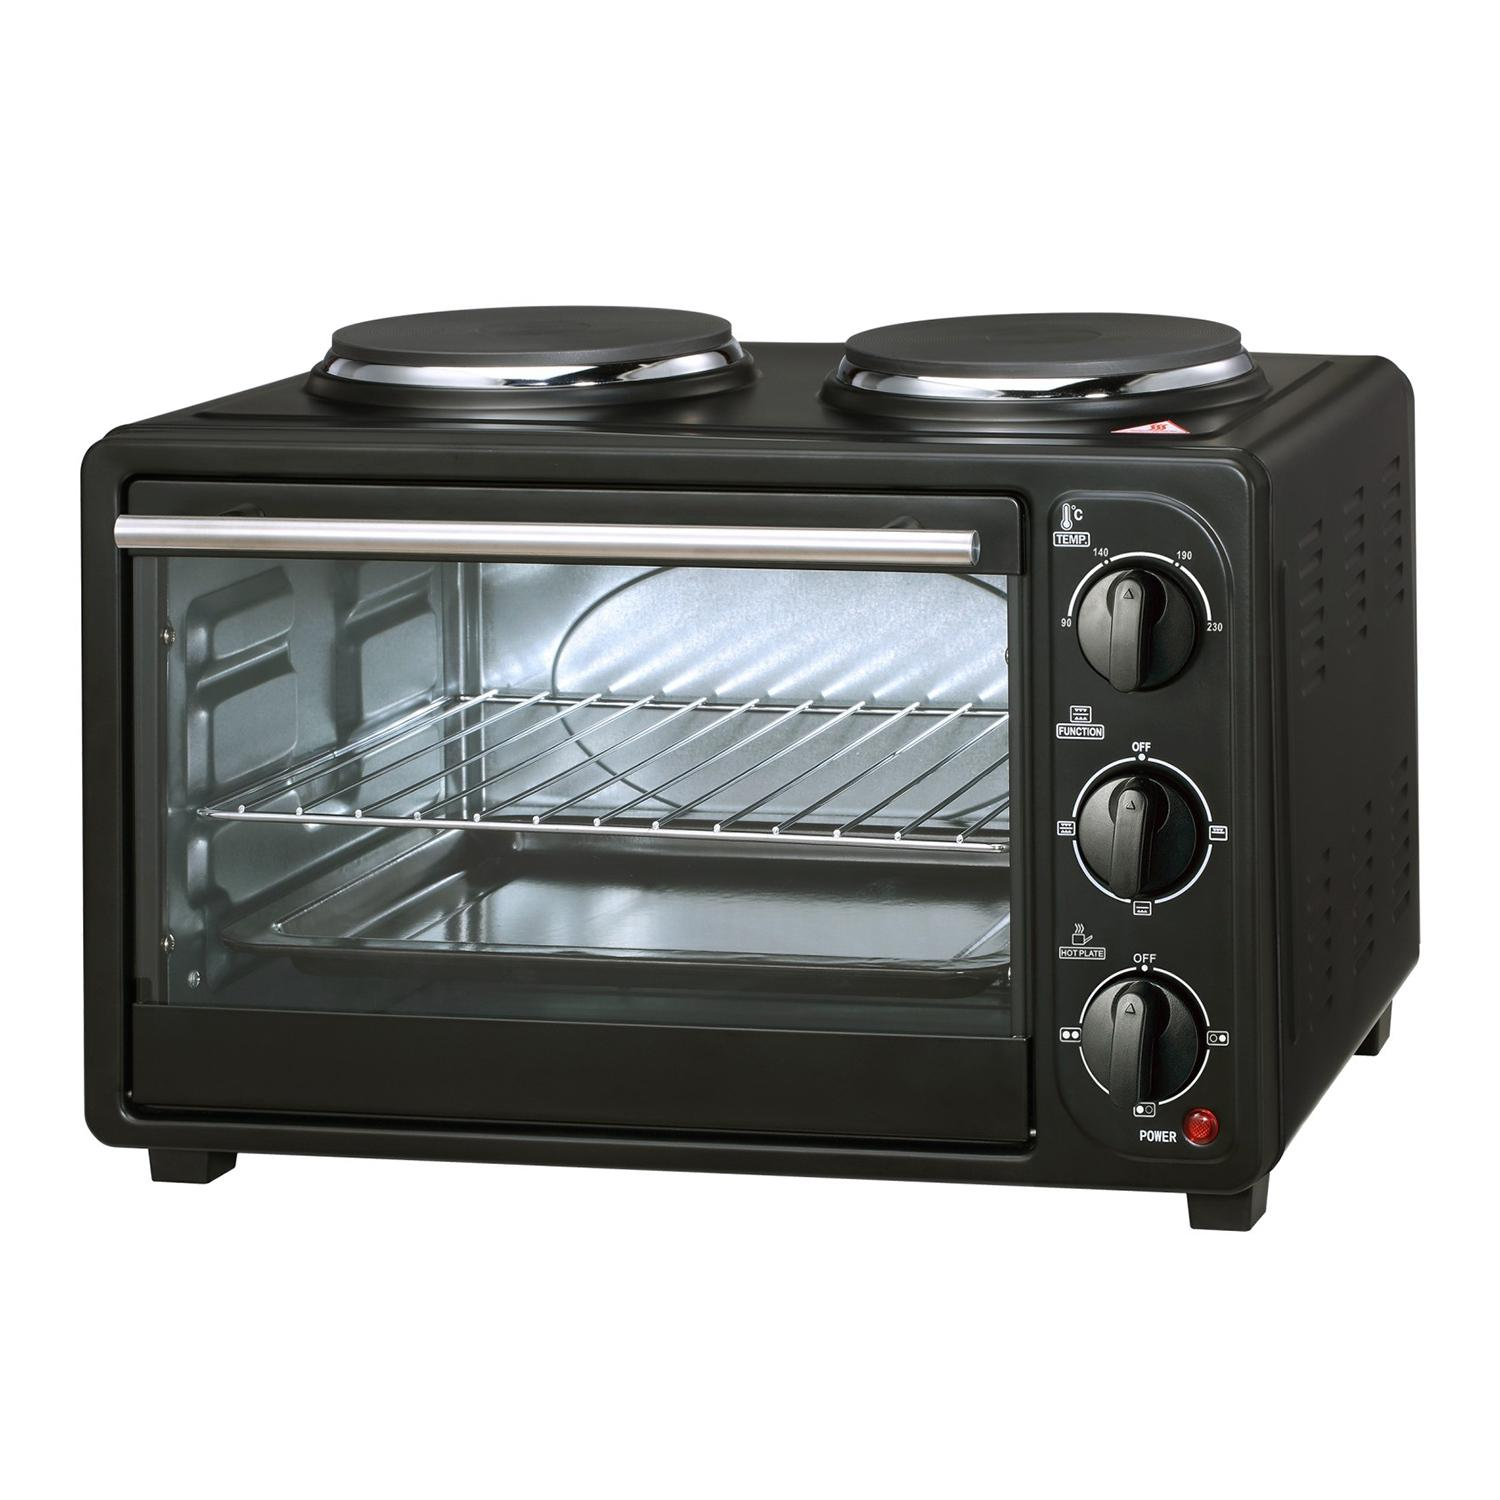 23L mini oven electric bread baking oven with two hot plates  1